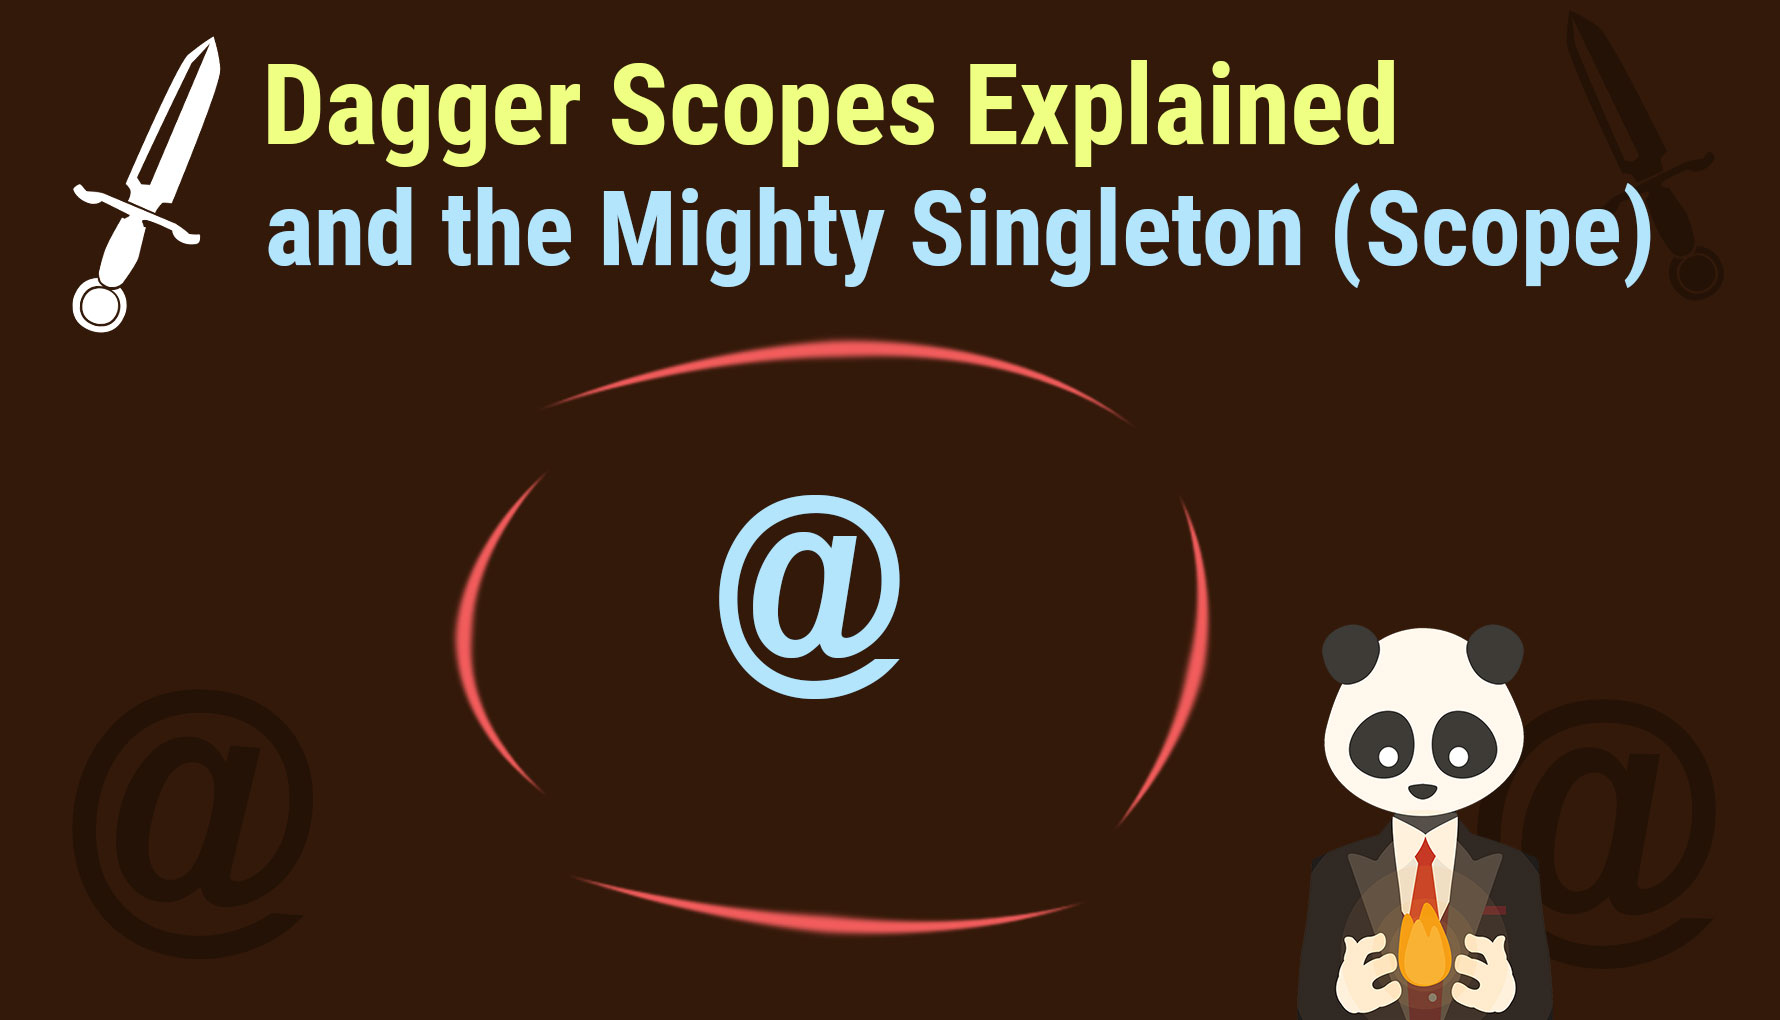 Dagger 2 Scopes Explained and the mighty Singleton (Scope)